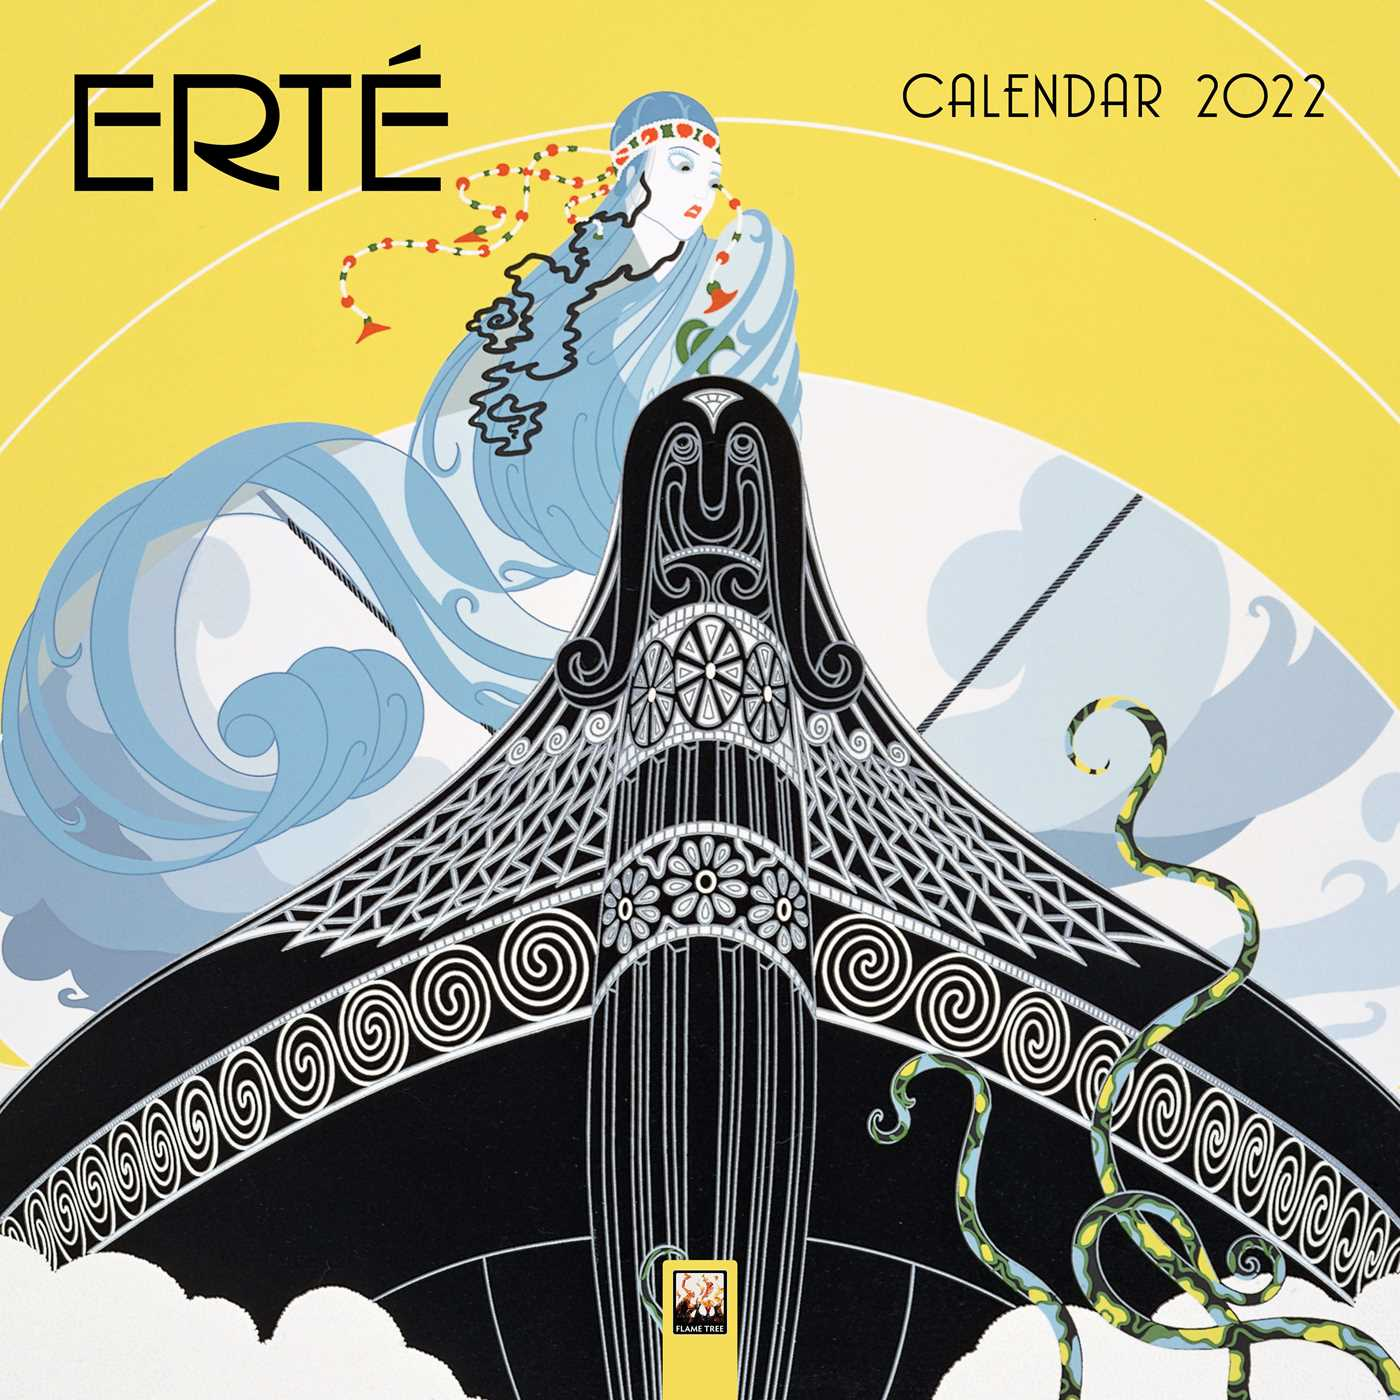 Wall Calendar 2022.Erte Wall Calendar 2022 Art Calendar Book Summary Video Official Publisher Page Simon Schuster